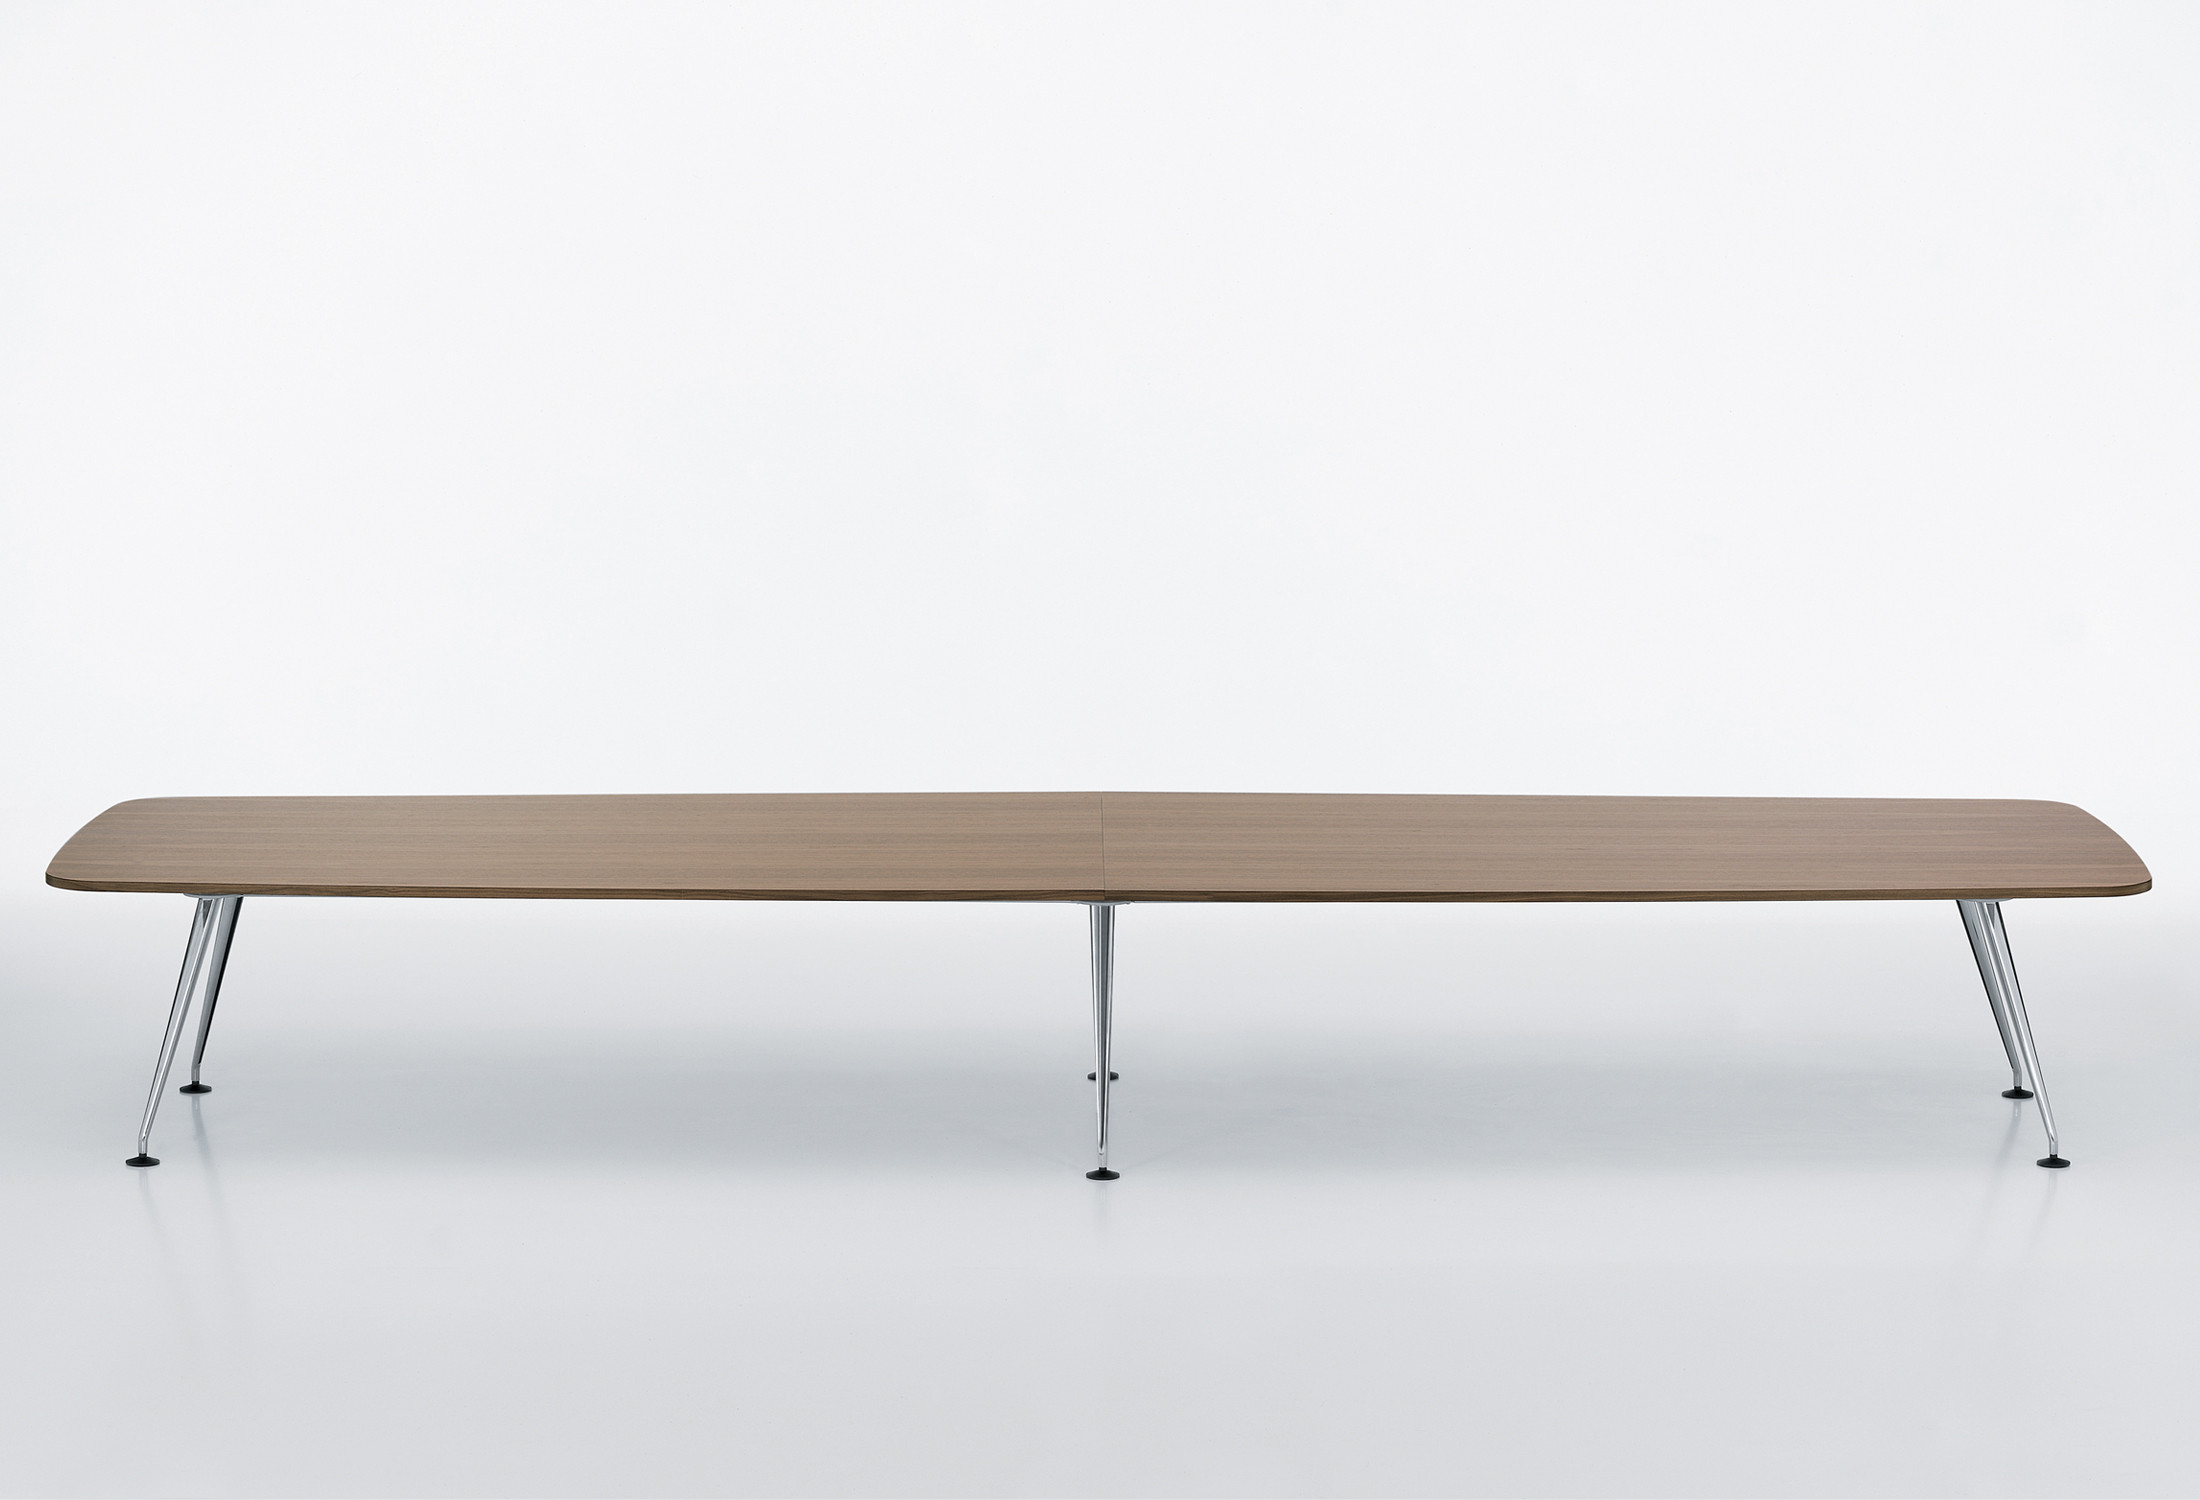 Medamorph table system conference tables apres furniture for Table in table